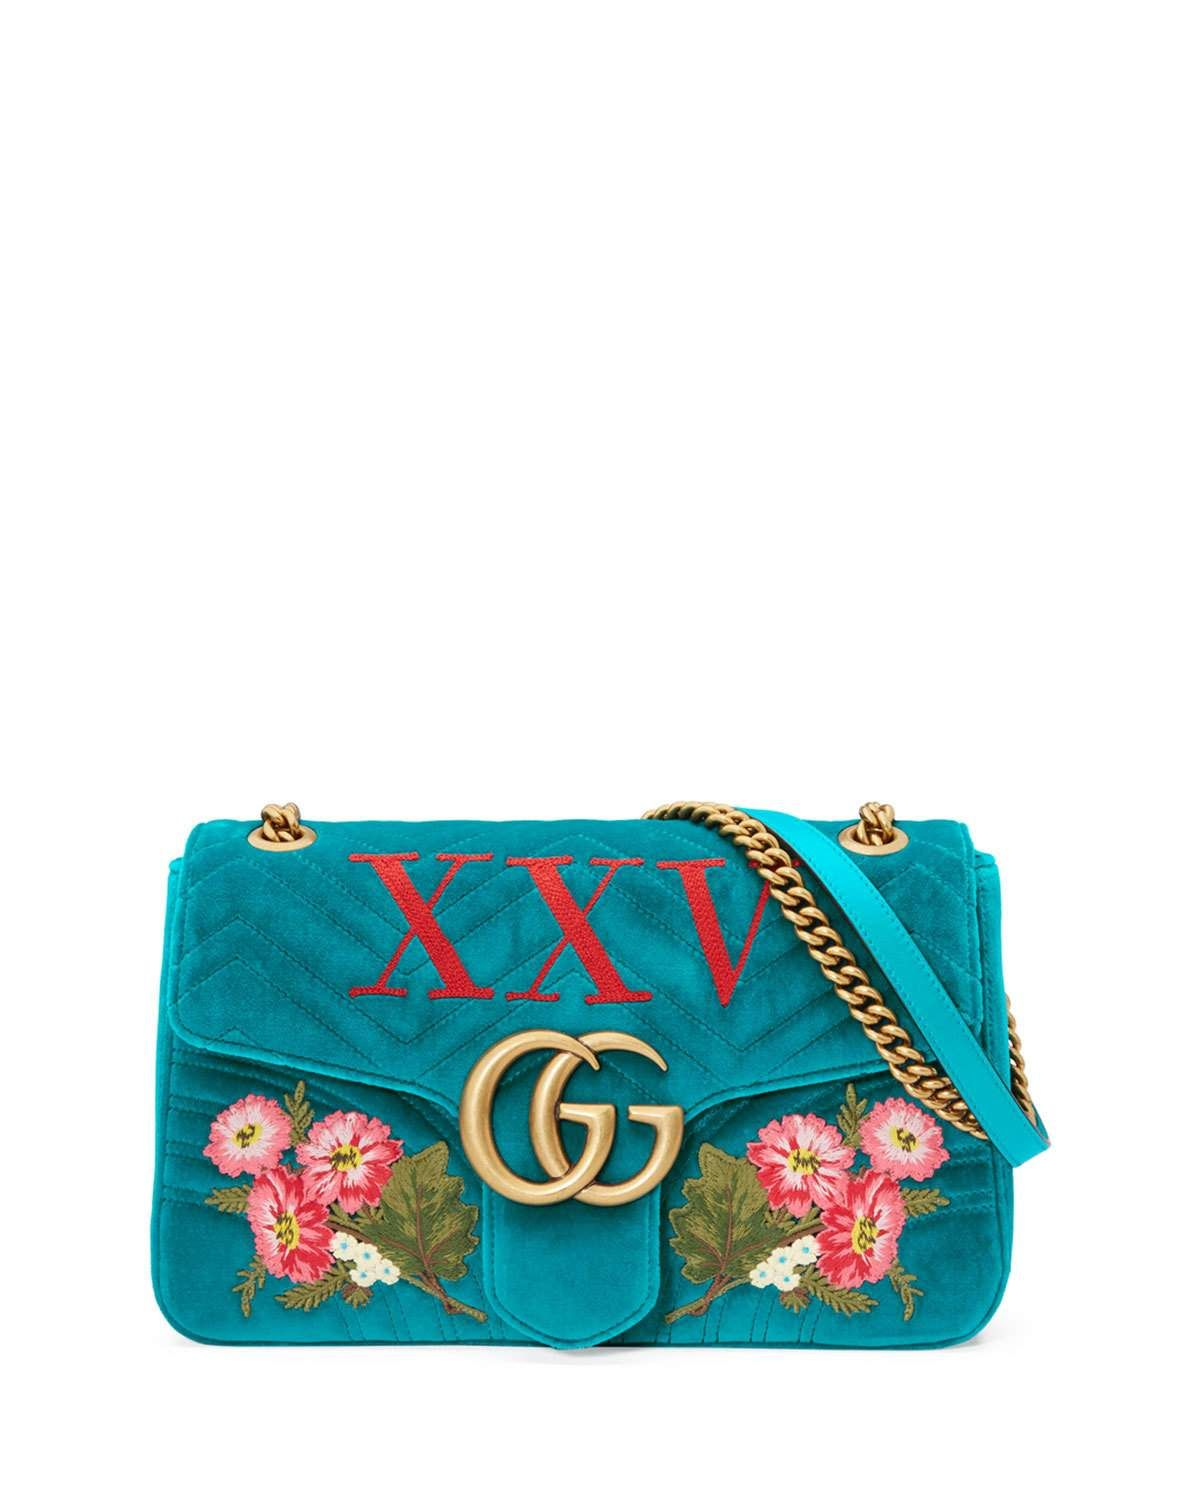 0e2325e41947 Gucci 110th Anniversary GG Marmont Small XXV Velvet Shoulder Bag ...